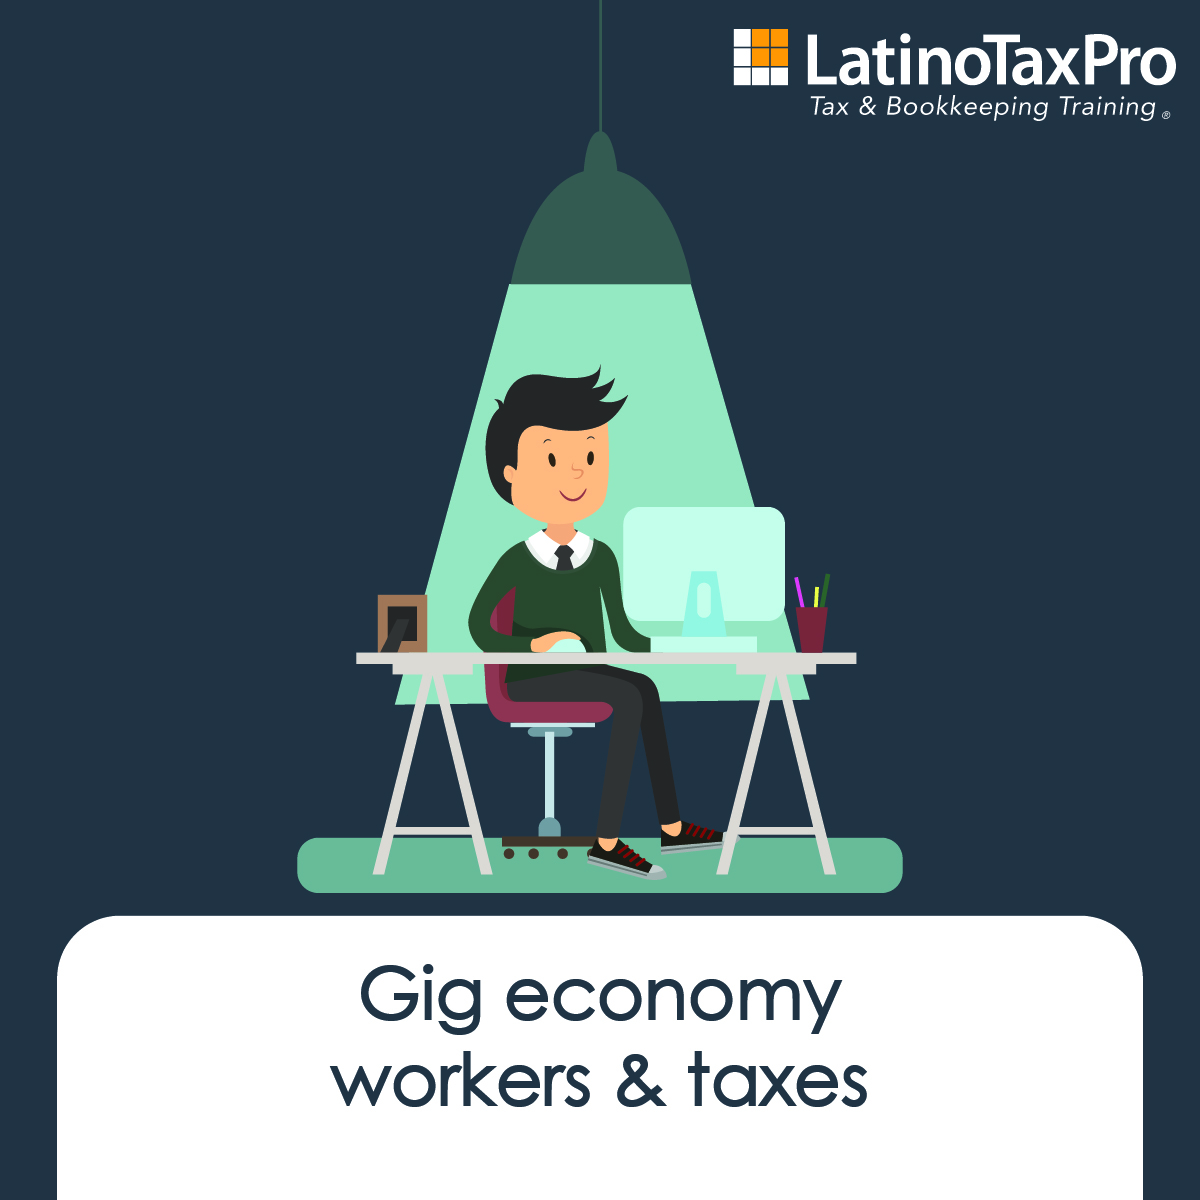 The gig economy refers to freelance and temporary work. If you earned income in the gig economy, it must be reported on your tax return 🚗 . . . . #taxes #tax #accounting #business  #taxpro #taxrefund #irs #taxtips #refund #taxprep #taxhelp #latinotaxpro #impuestos